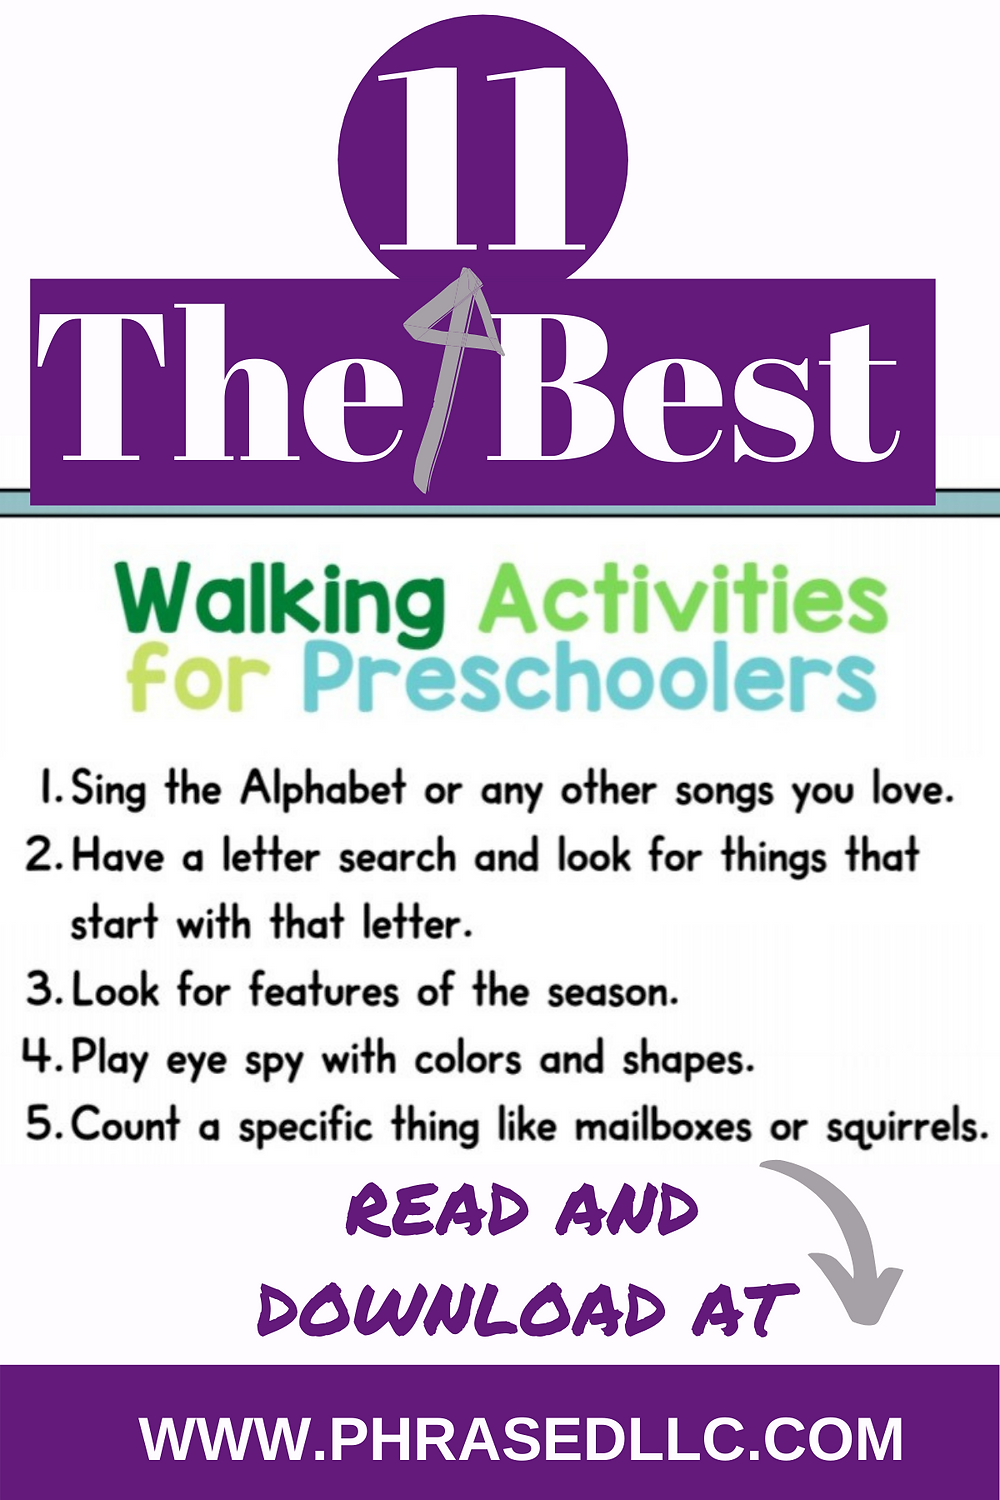 The 11 best walking activities for preschoolers to help them get out in nature and exercise while learning.